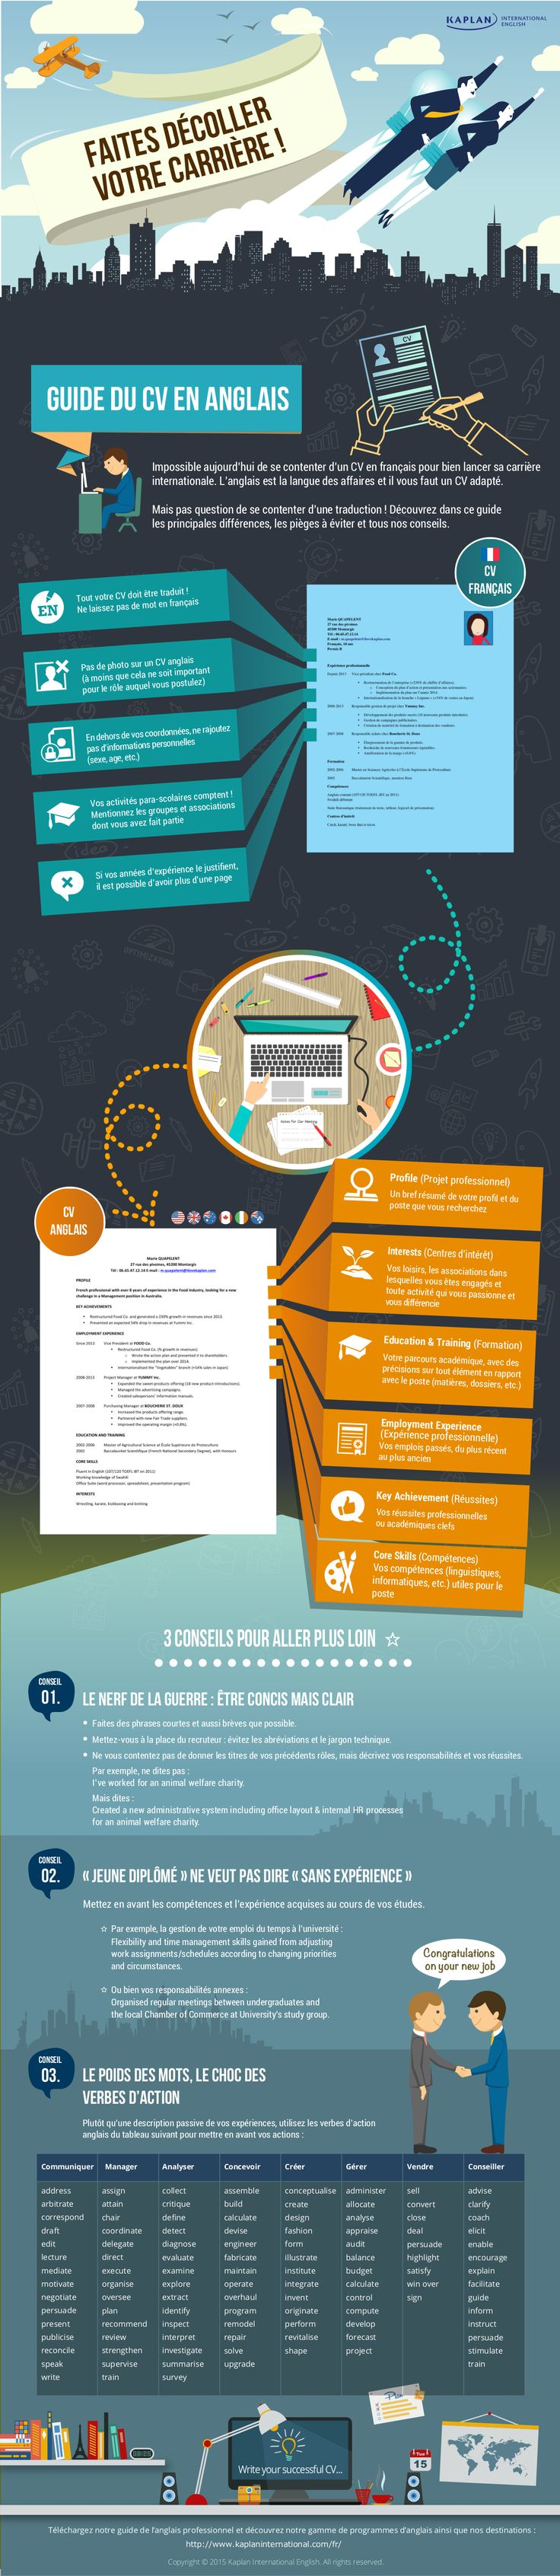 business infographic   pas question de se contenter d u2019une traduction pour votre cv en anglais